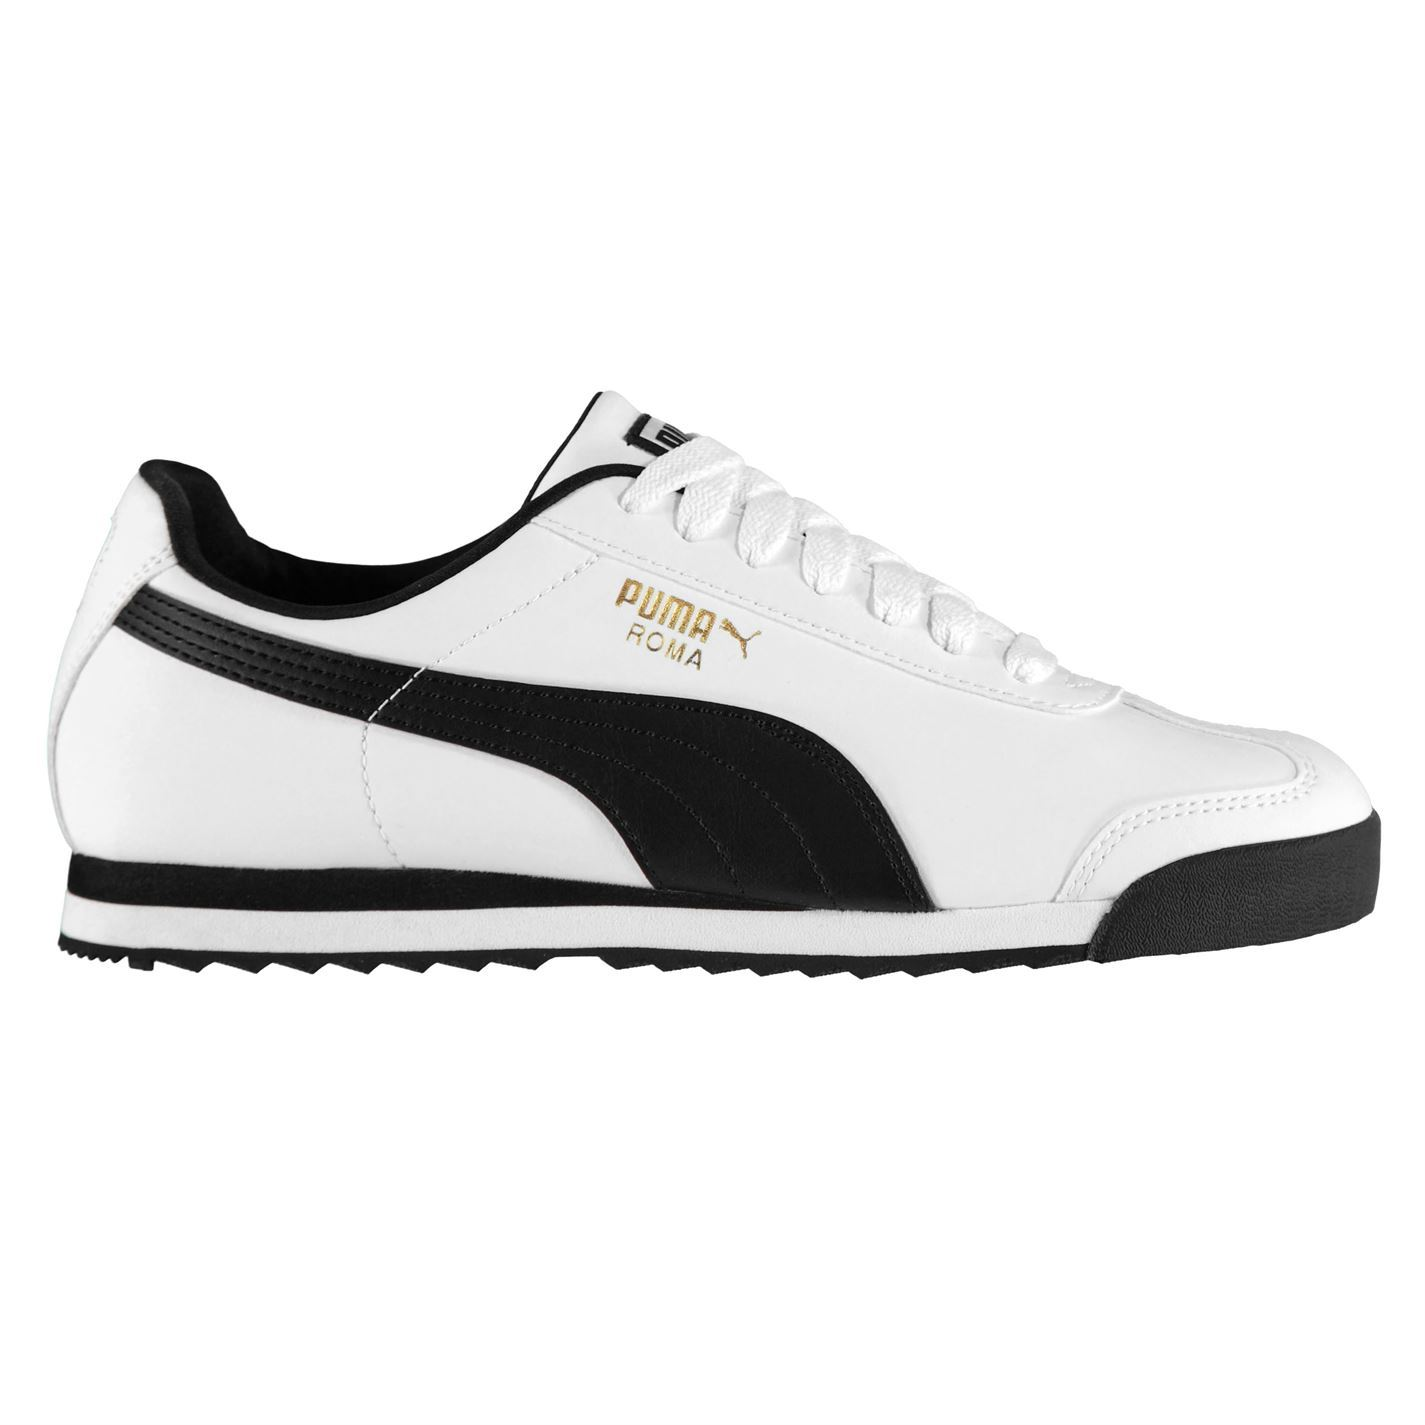 Puma-Roma-Basic-Trainers-Mens-Athleisure-Footwear-Shoes-Sneakers thumbnail 34